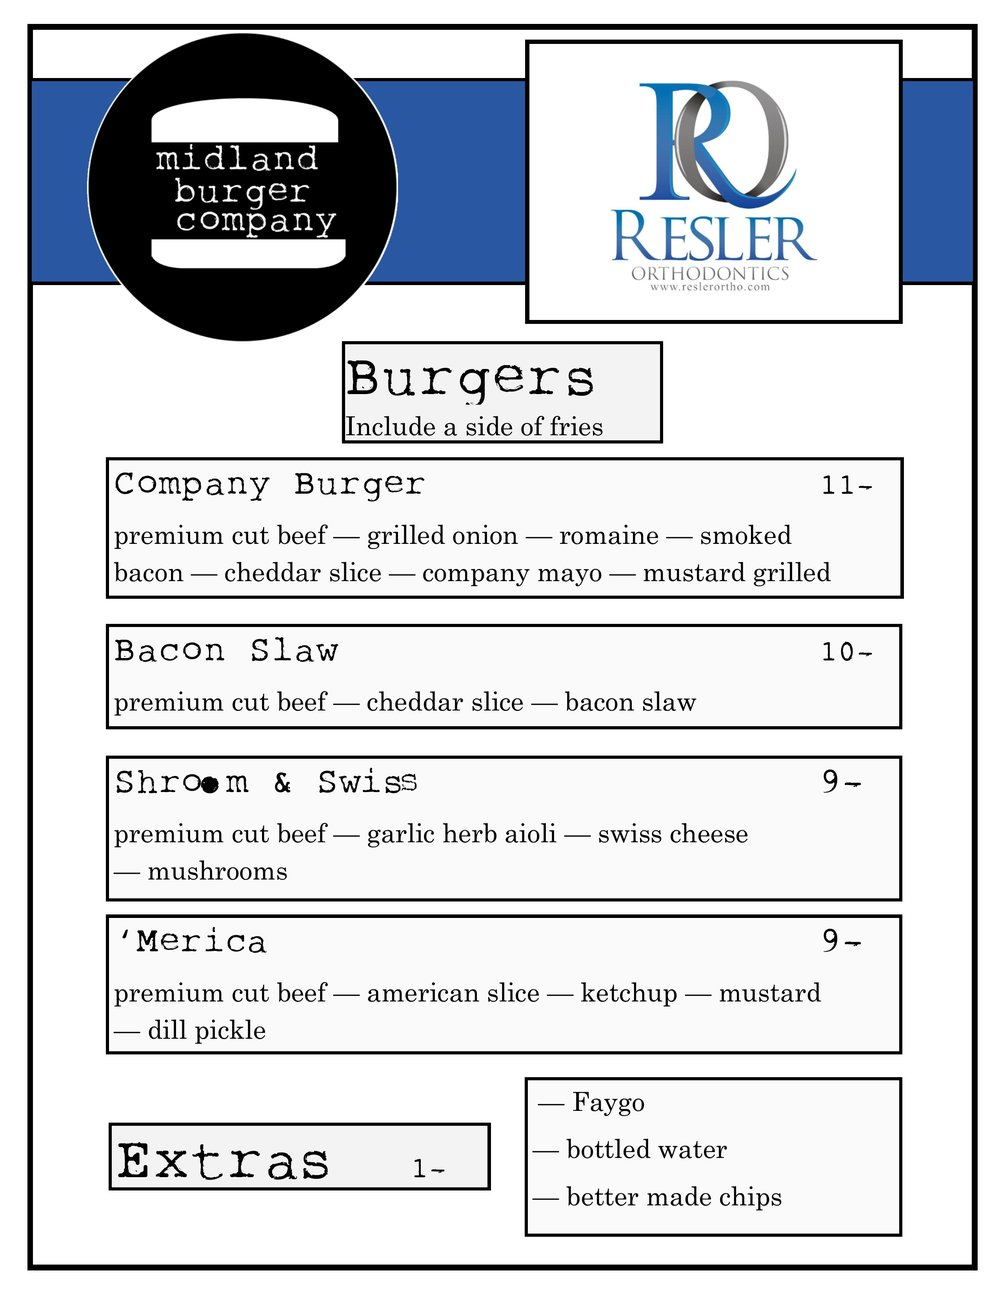 Resler Orthodontics Menu .jpg